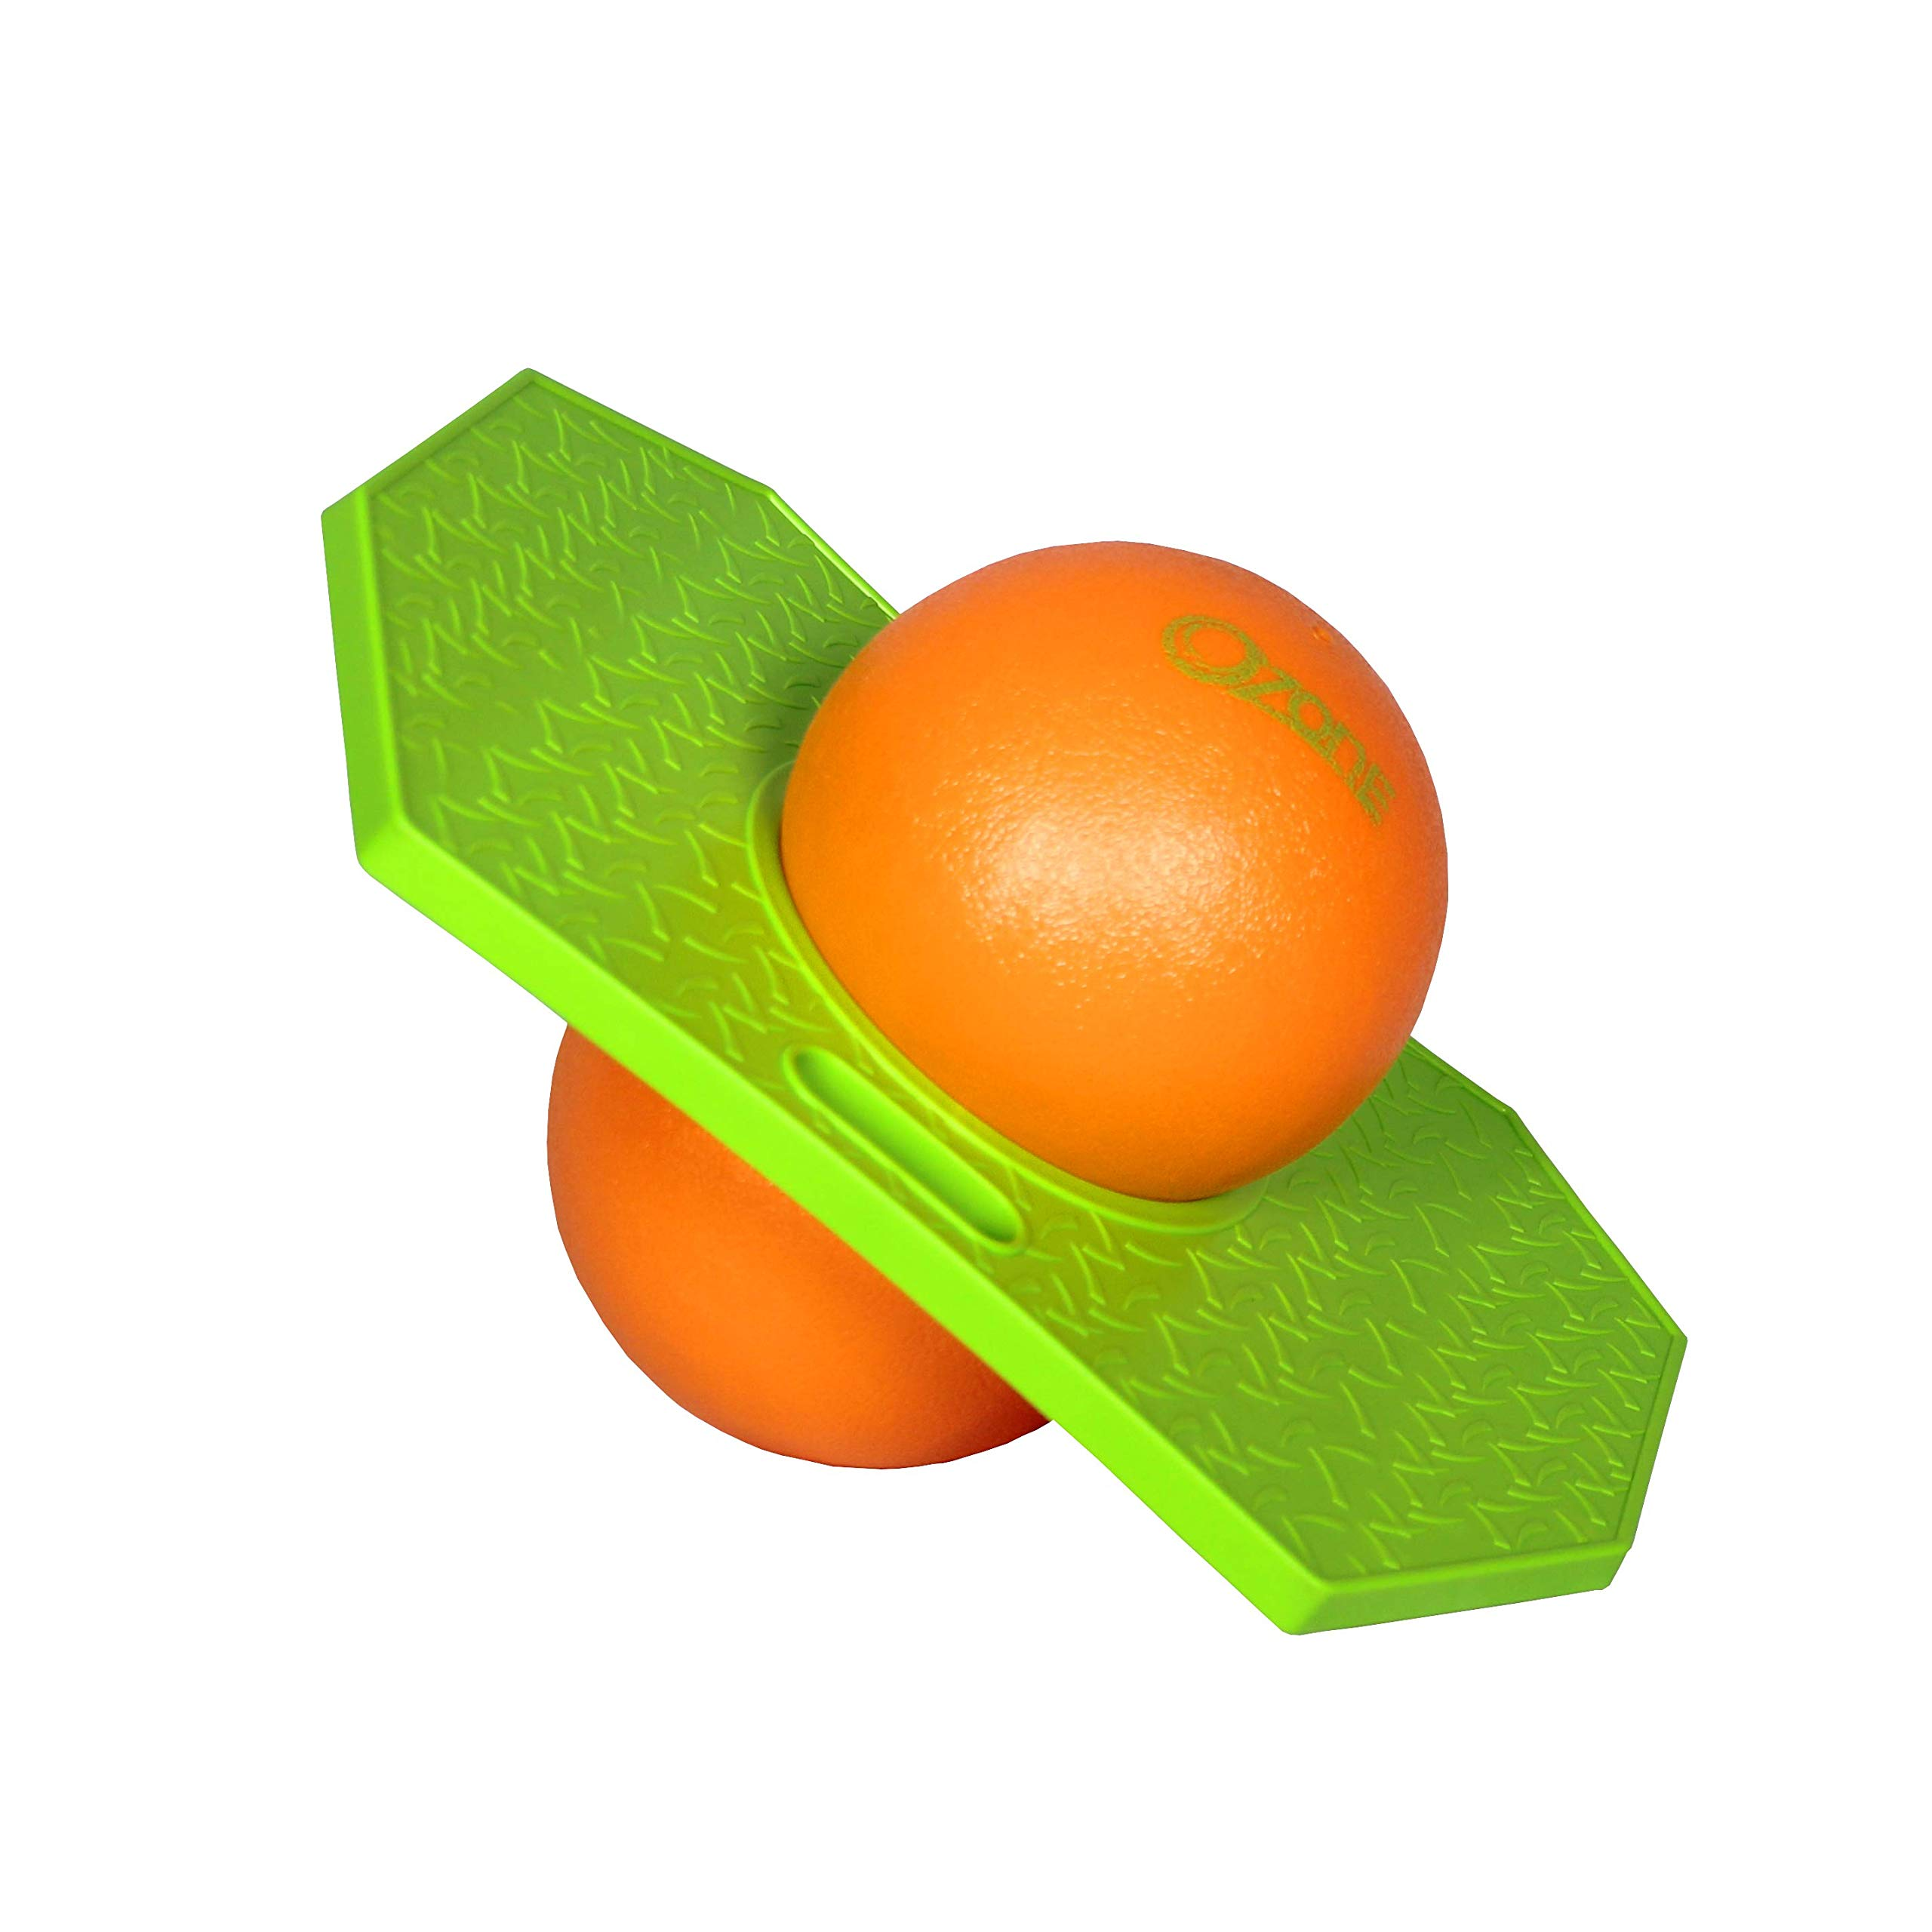 Flybar Pogo Ball for Kids, Jump Trick Bounce Board with Pump and Strong Grip Deck (Green Ozone) by Flybar